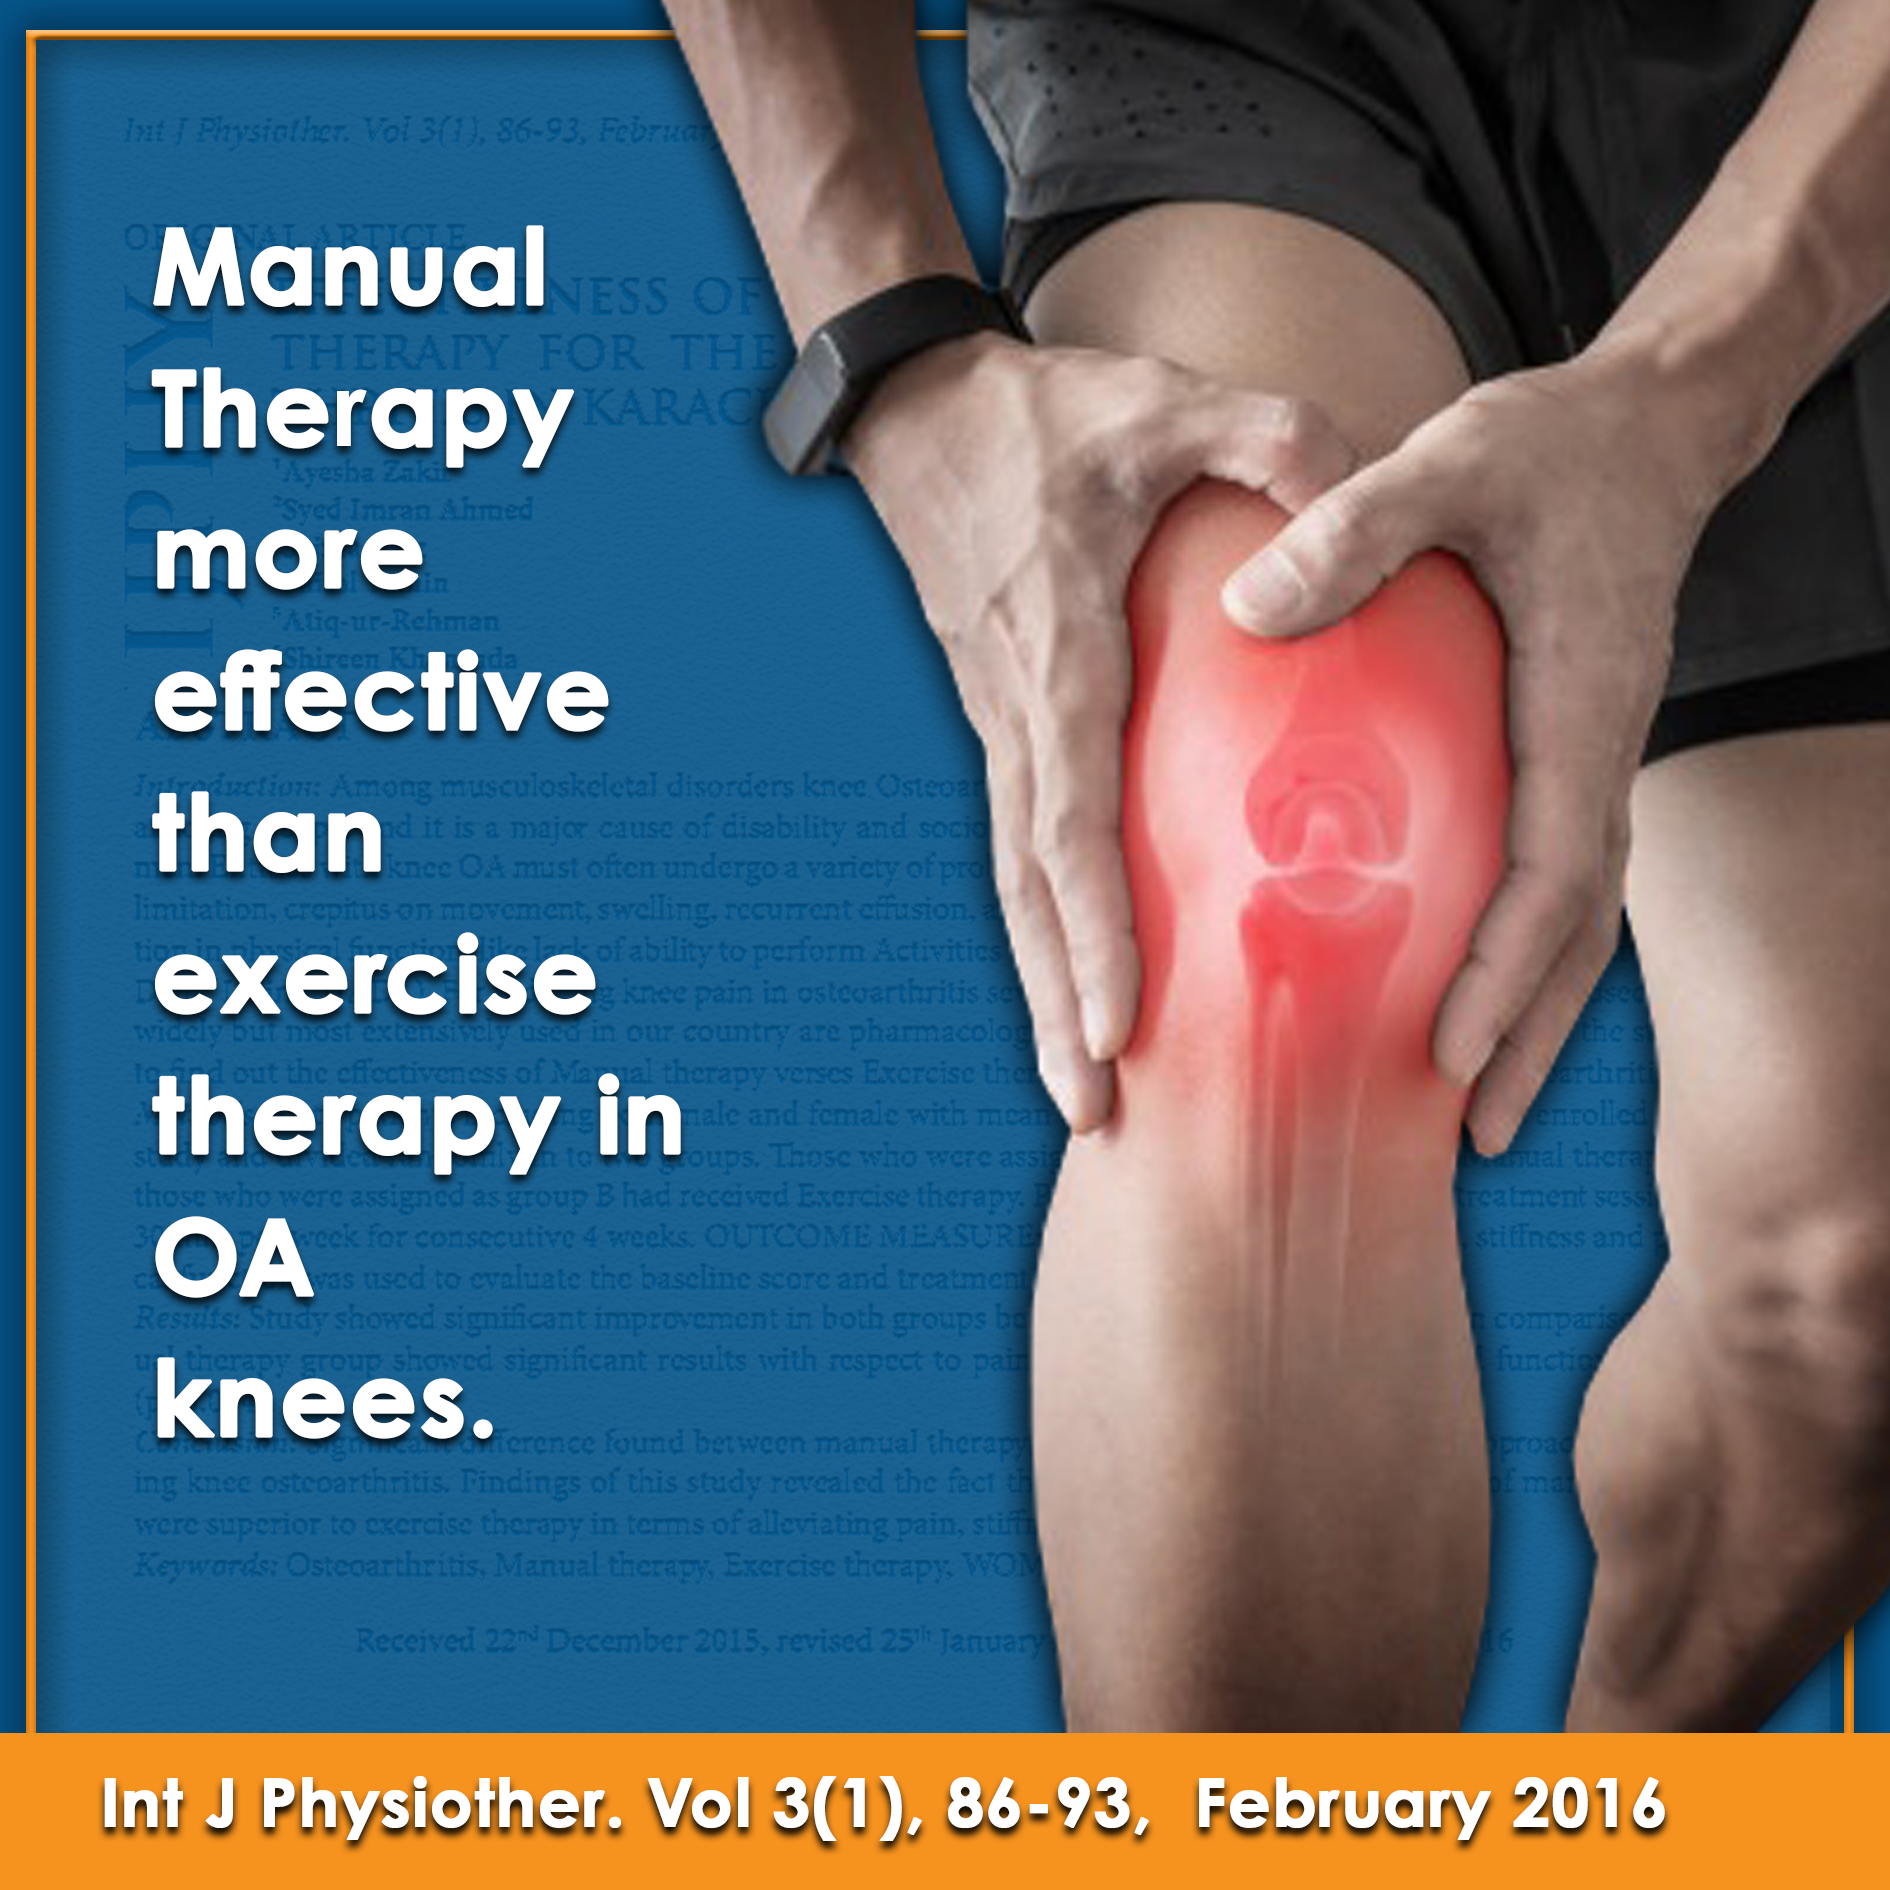 Manual Therapy vs Exercise Therapy